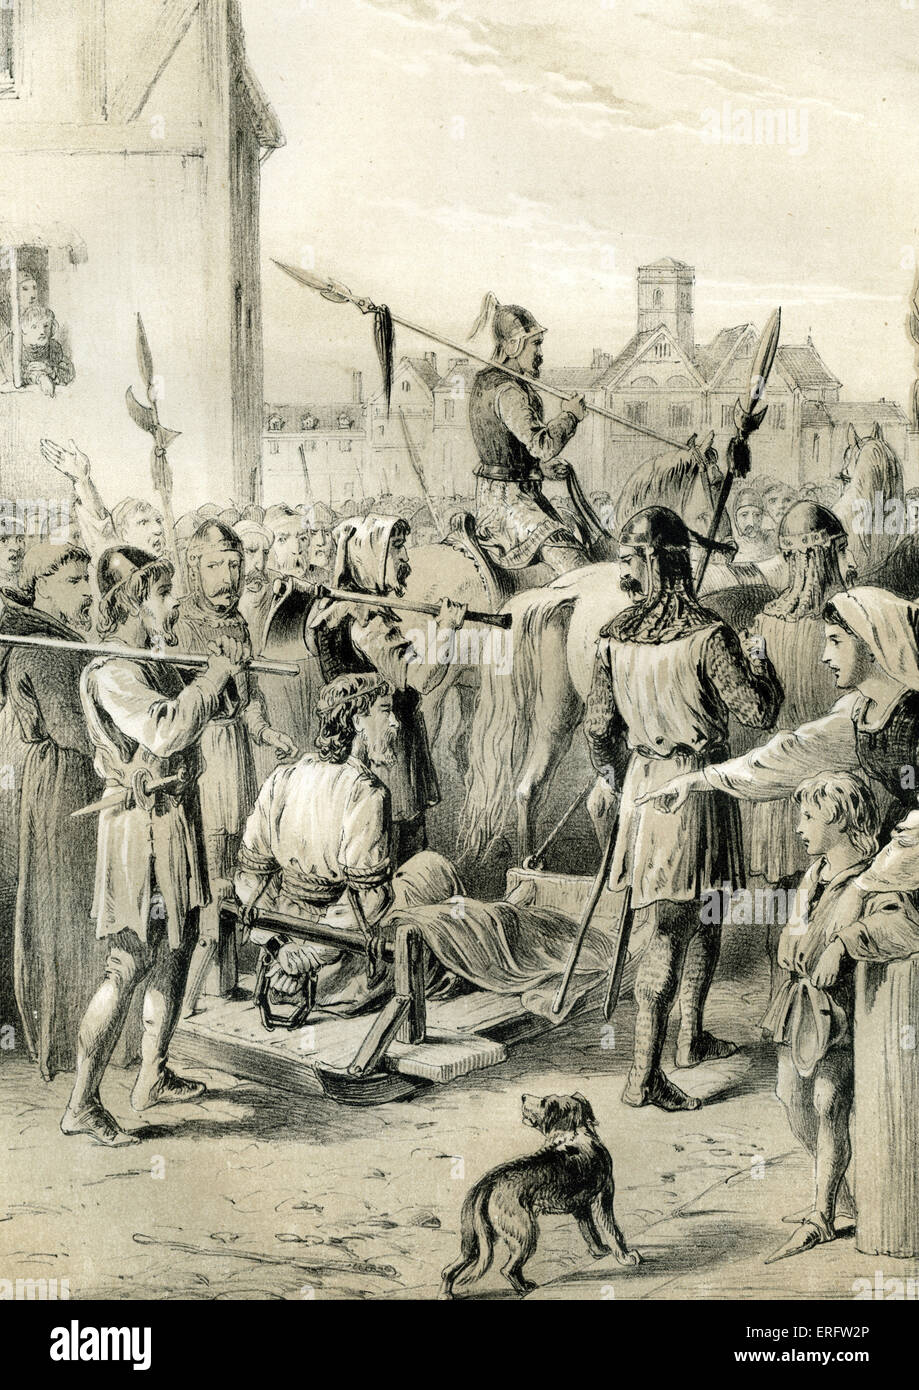 William Wallace, a minor Scottish nobleman  who had some military success against Edward I, is dragged to execution - Stock Image